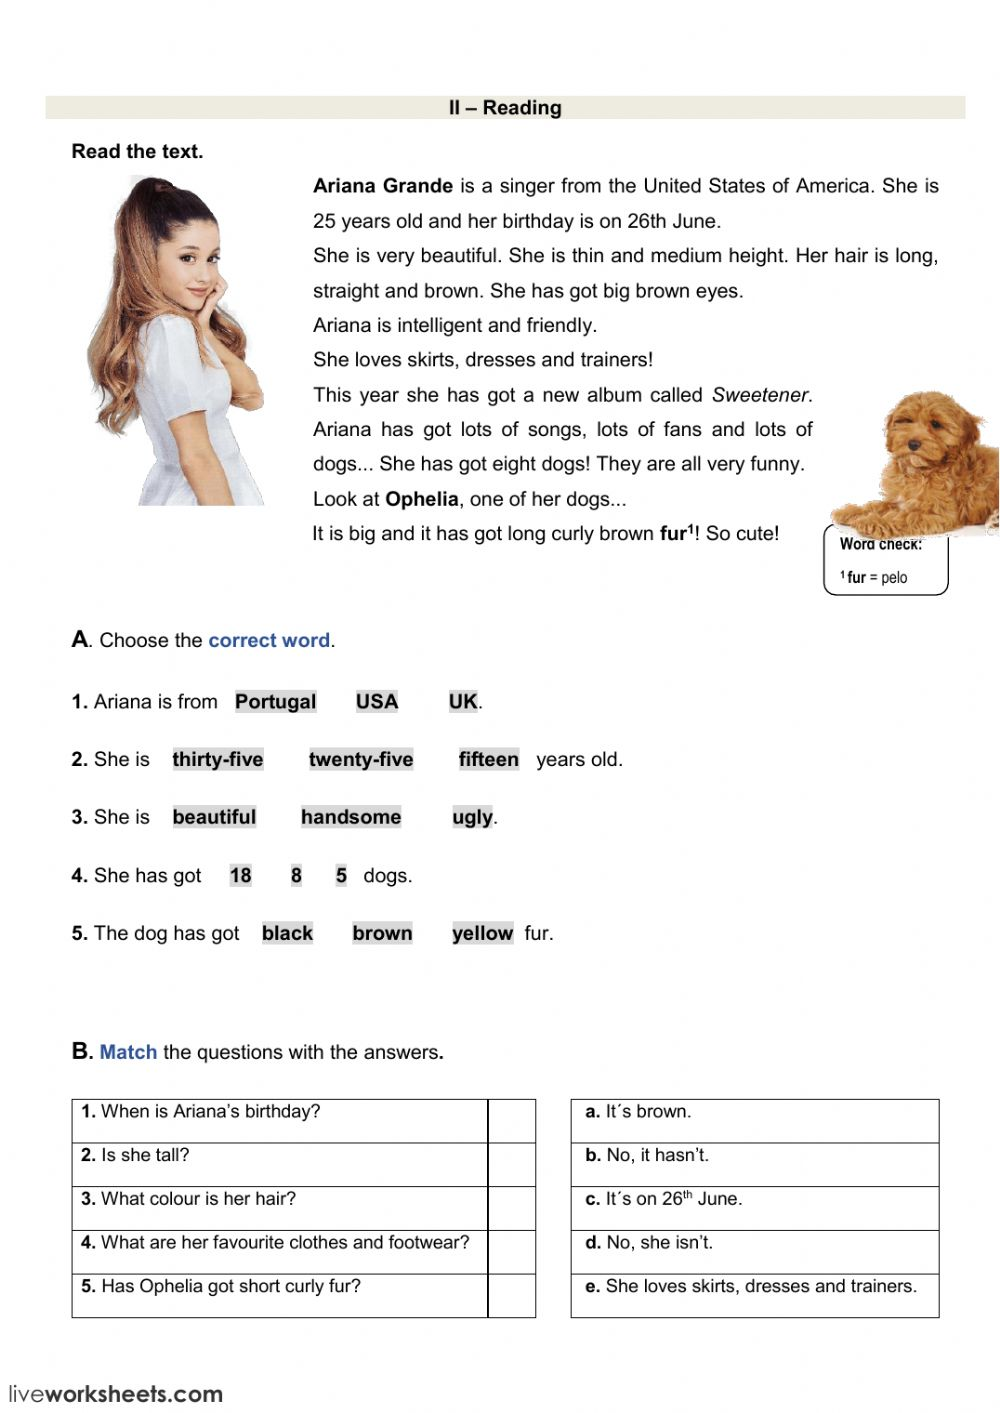 - Reading Test - Ariana Grande - Interactive Worksheet